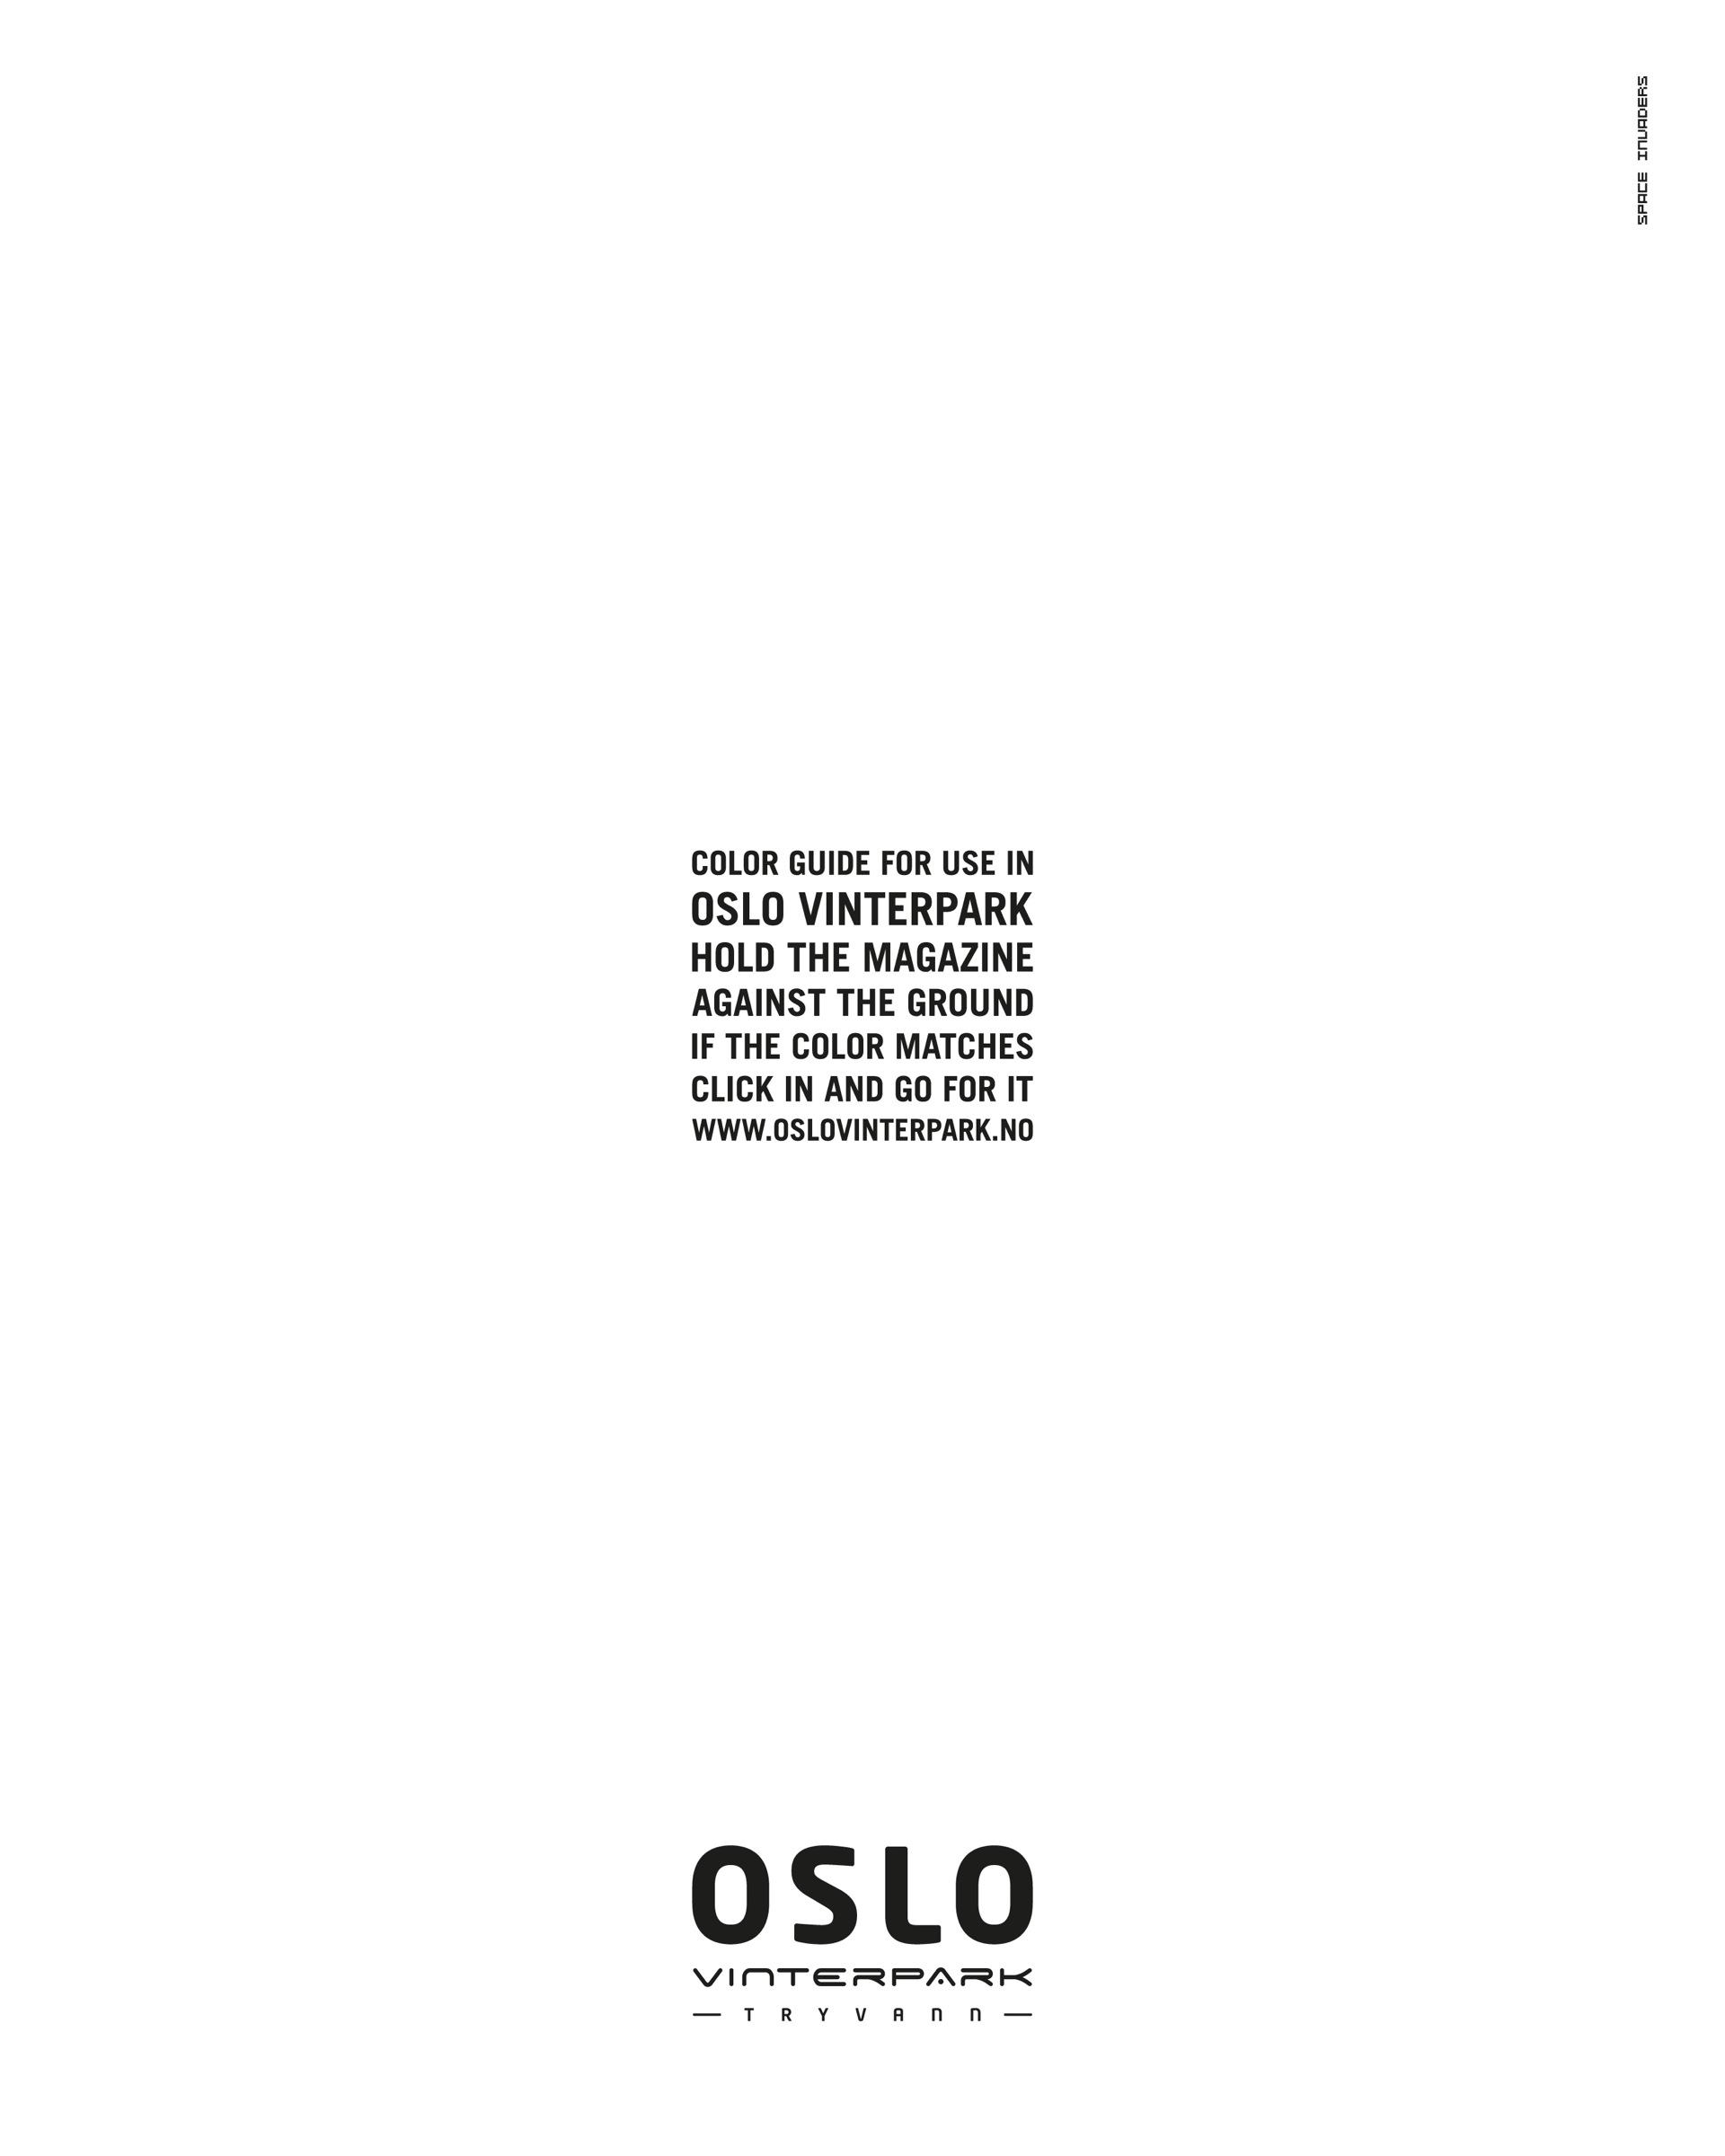 Oslo Vinterpark Print Ad -  Color Guide